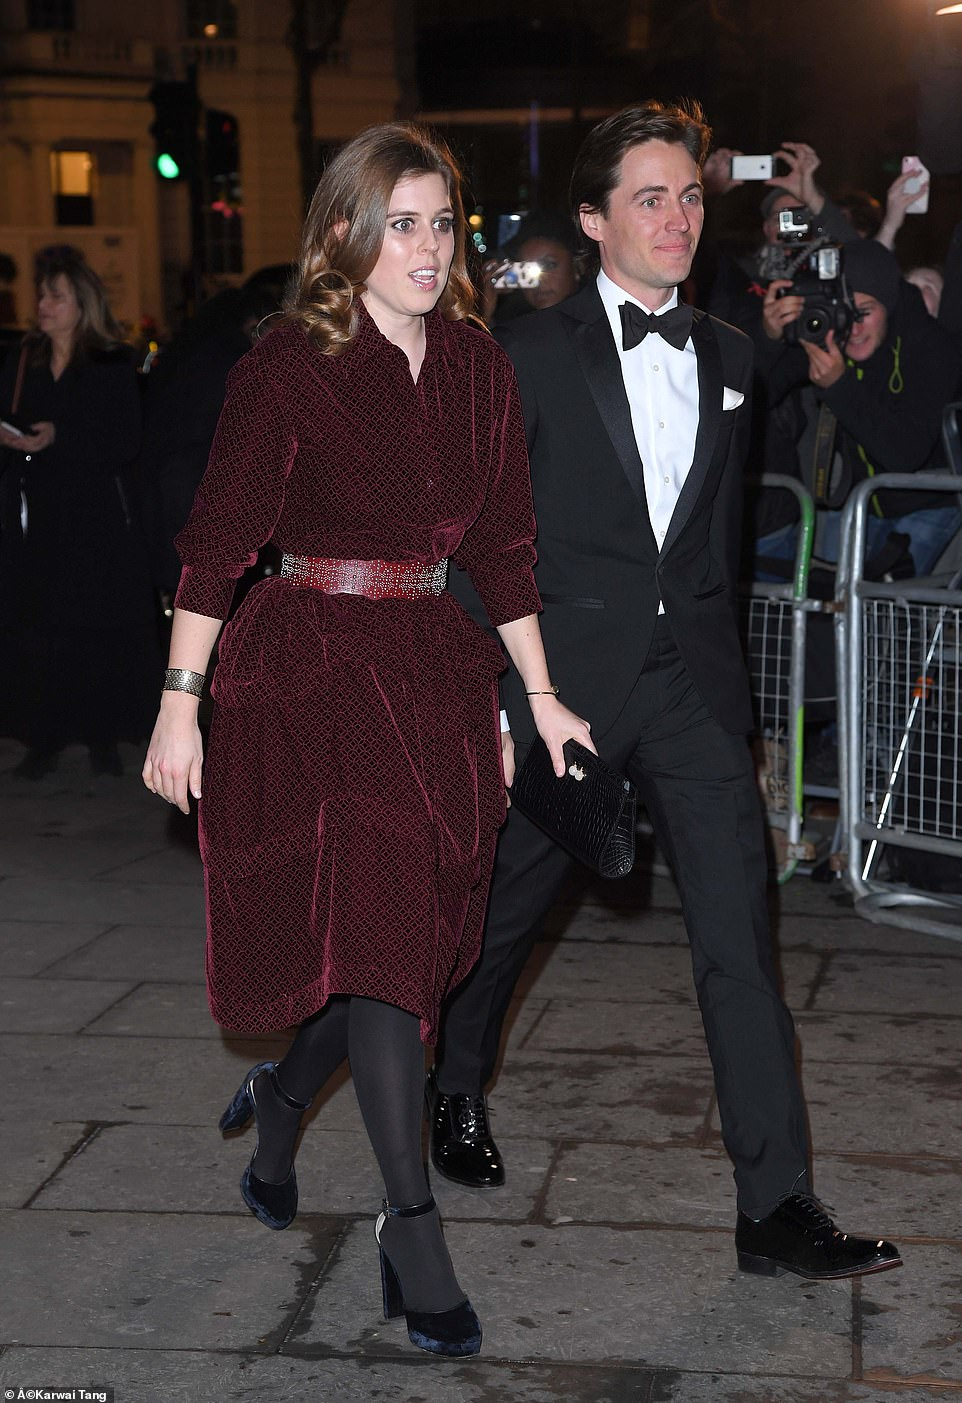 Princess Beatrice made her first official red carpet appearance with property developer boyfriend Edoardo Mapelli Mozzi as the pair joined the Duchess of Cambridge at the National Portrait Gallery on Tuesday evening